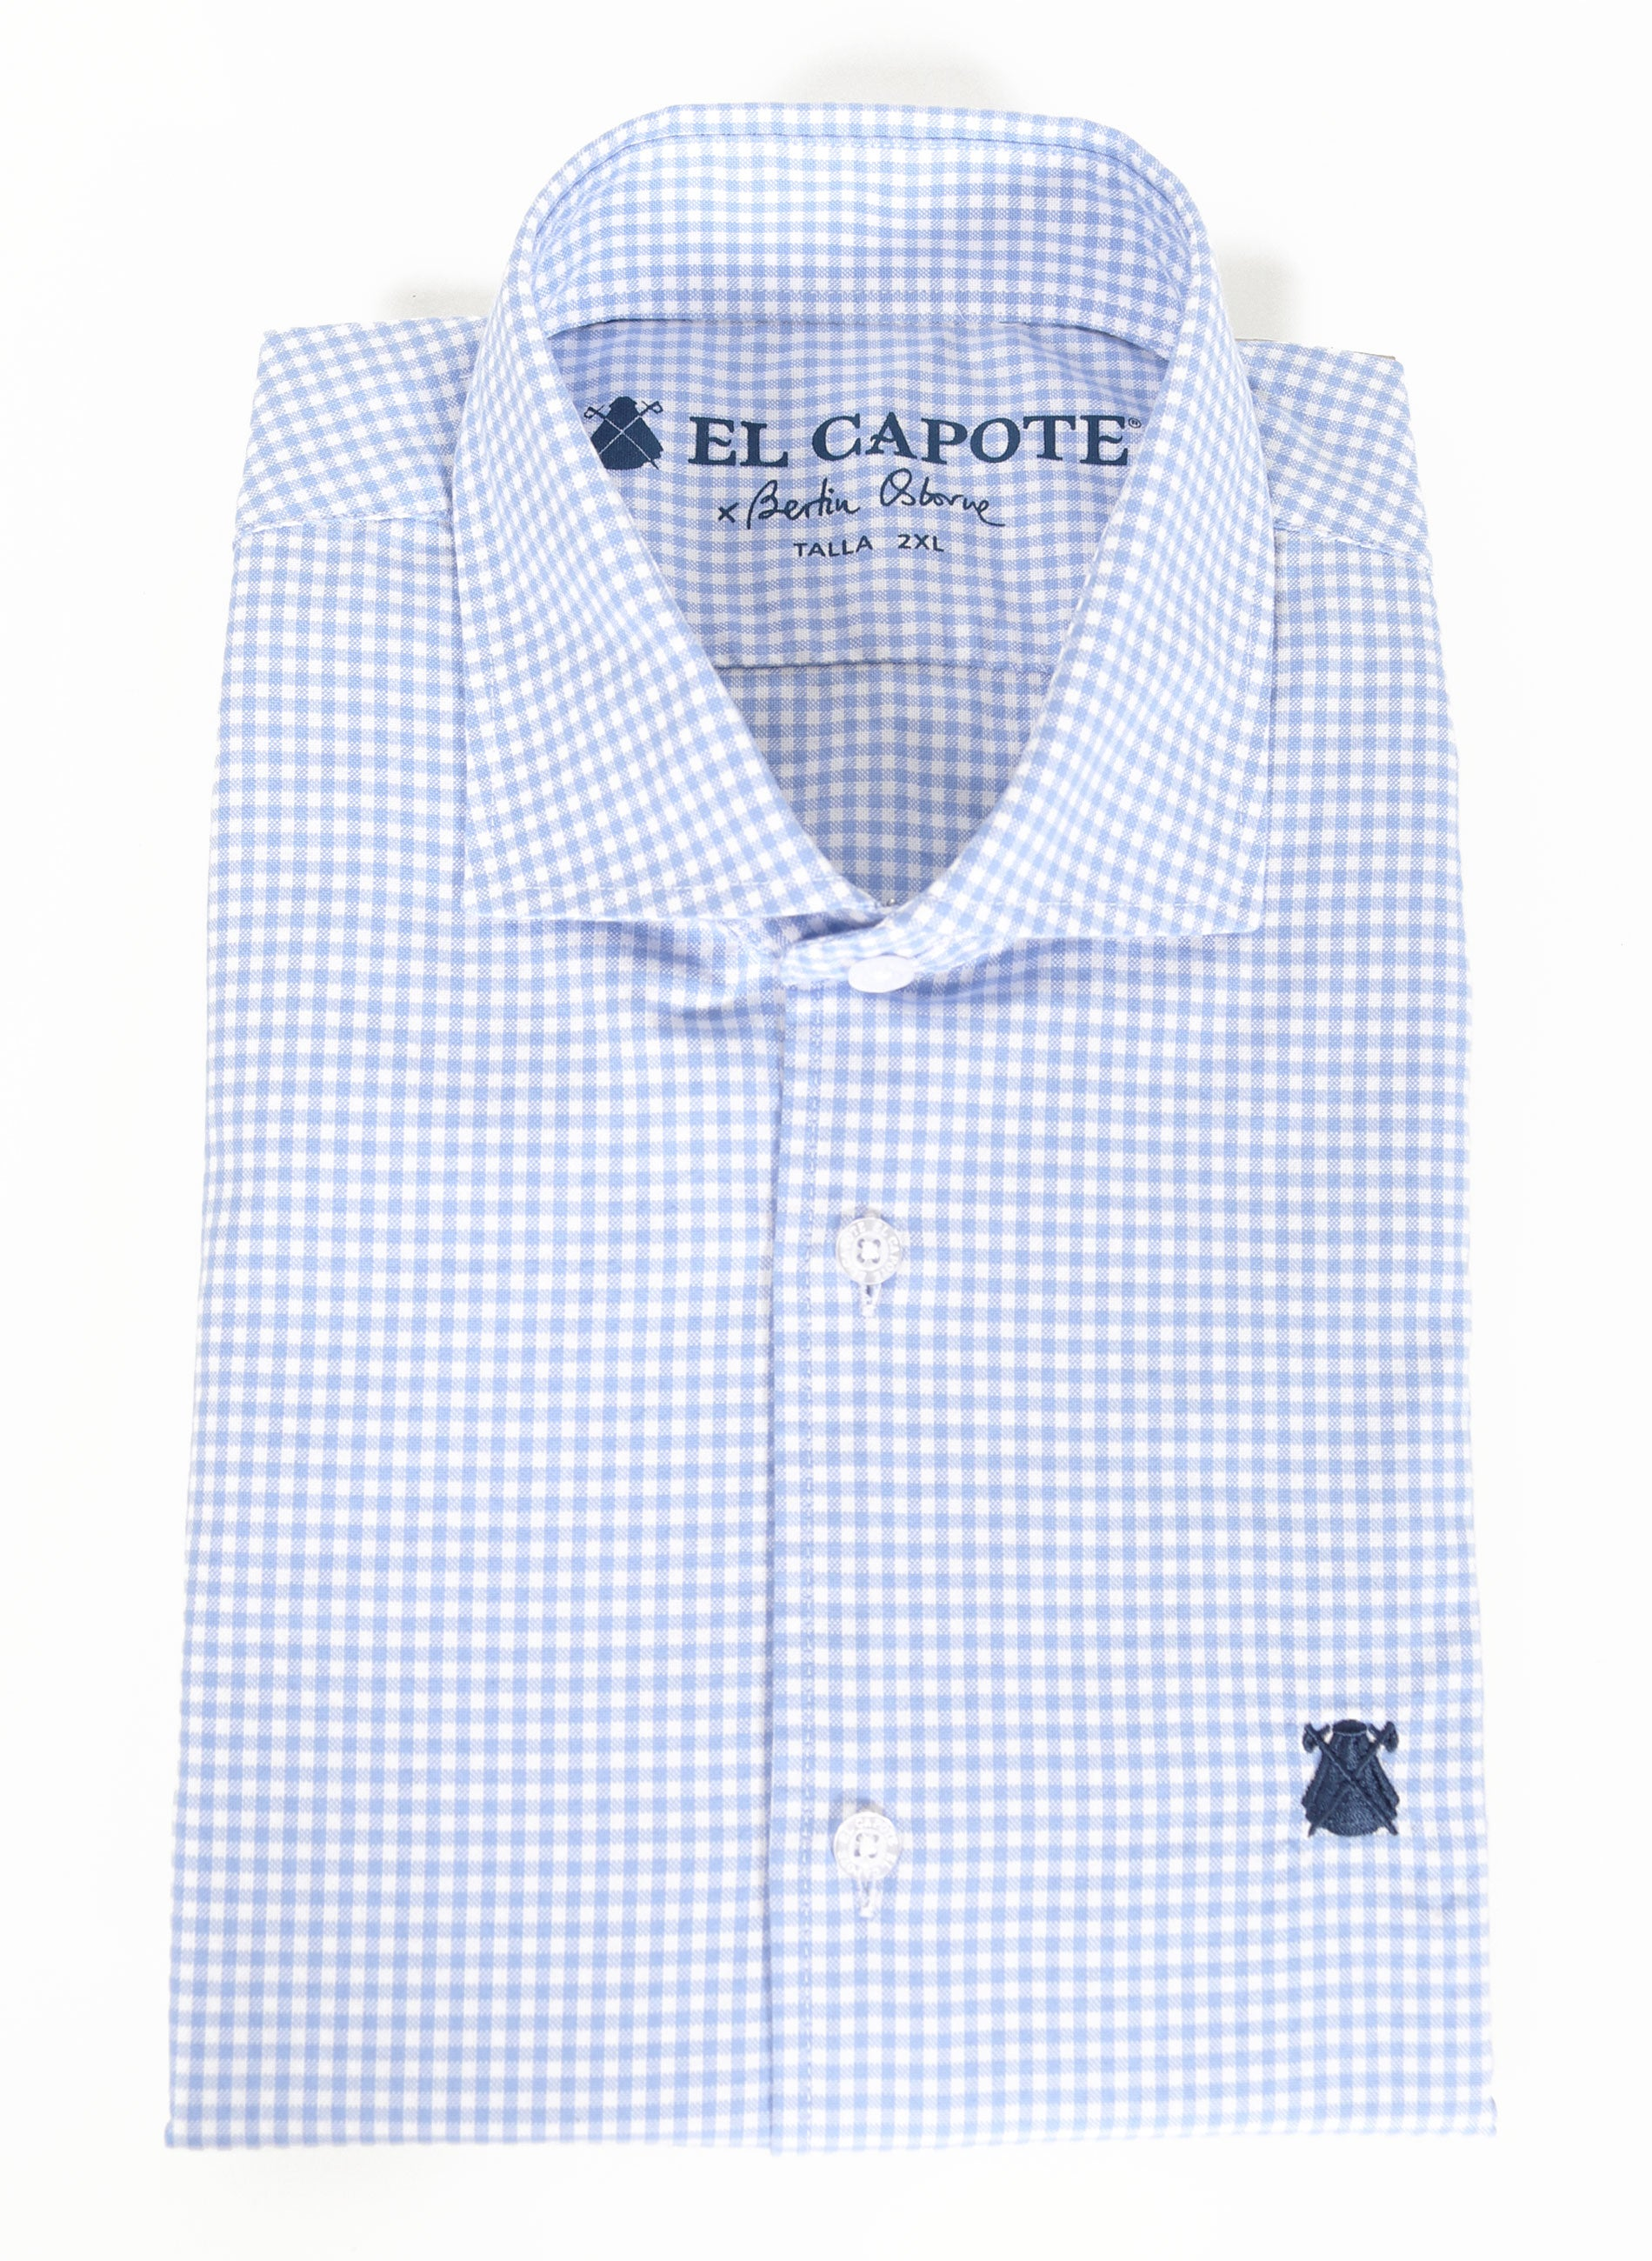 Light Blue x Bertín Osborne Gingham Check Men's Shirt